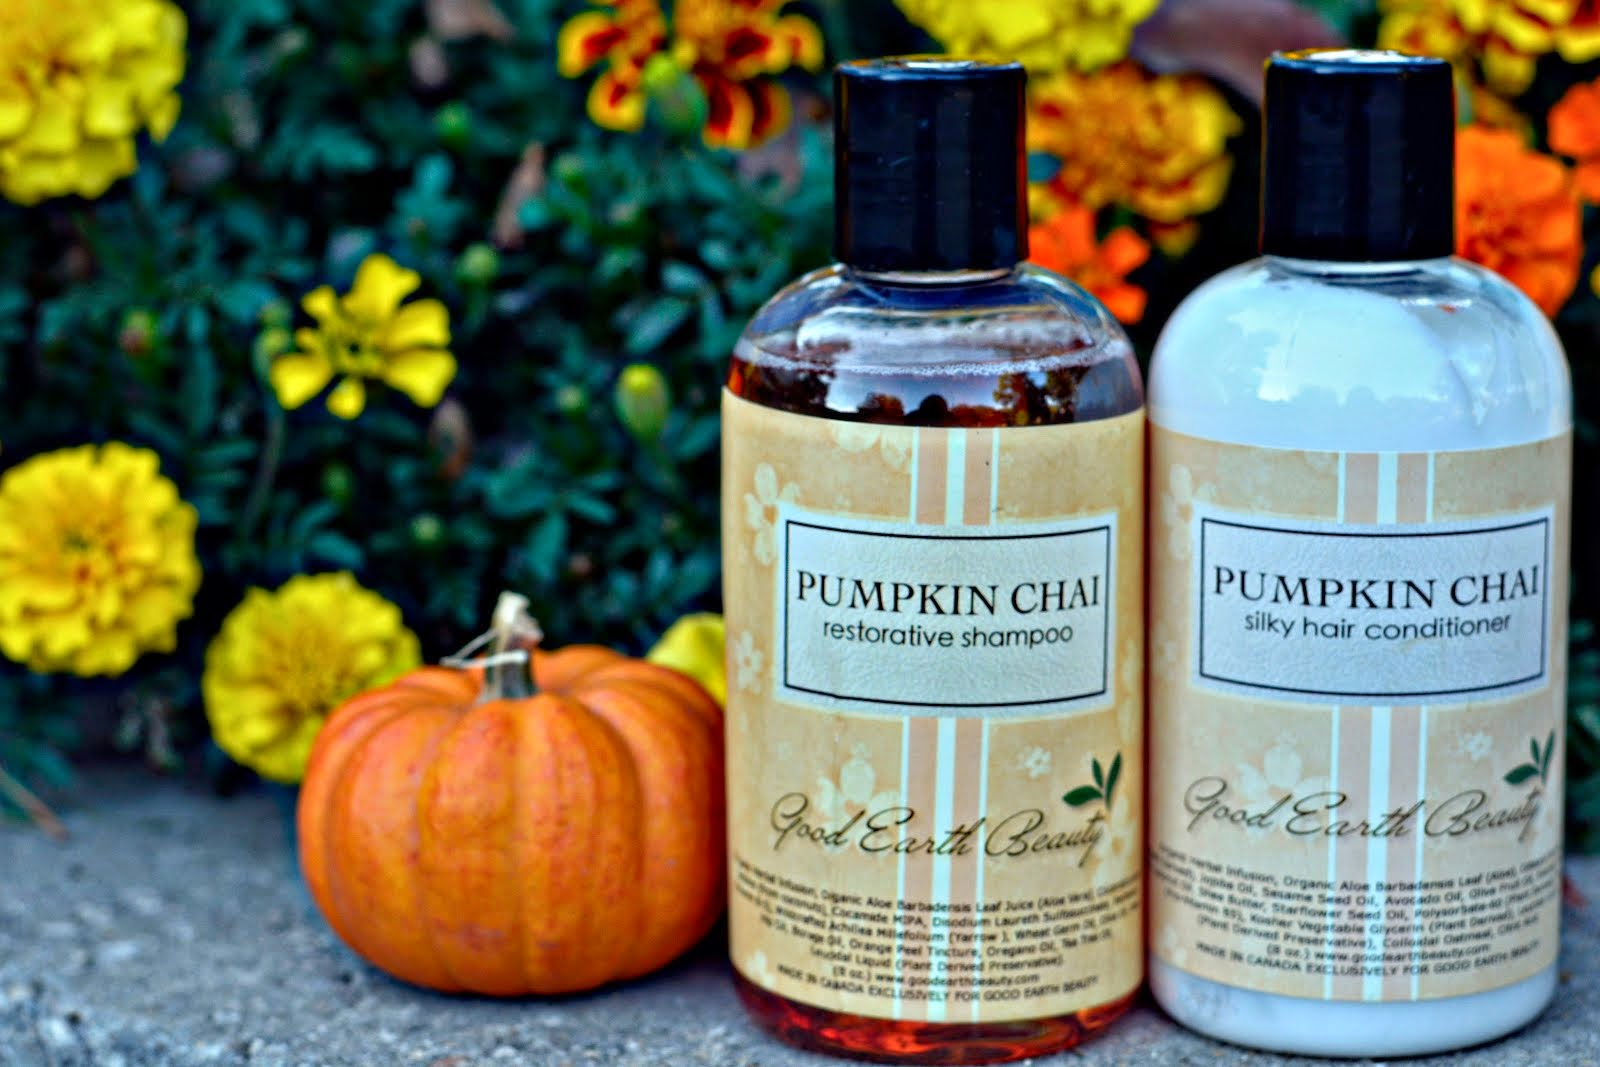 Enter To Win Good Earth Beauty Pumpkin Chai Hair Care